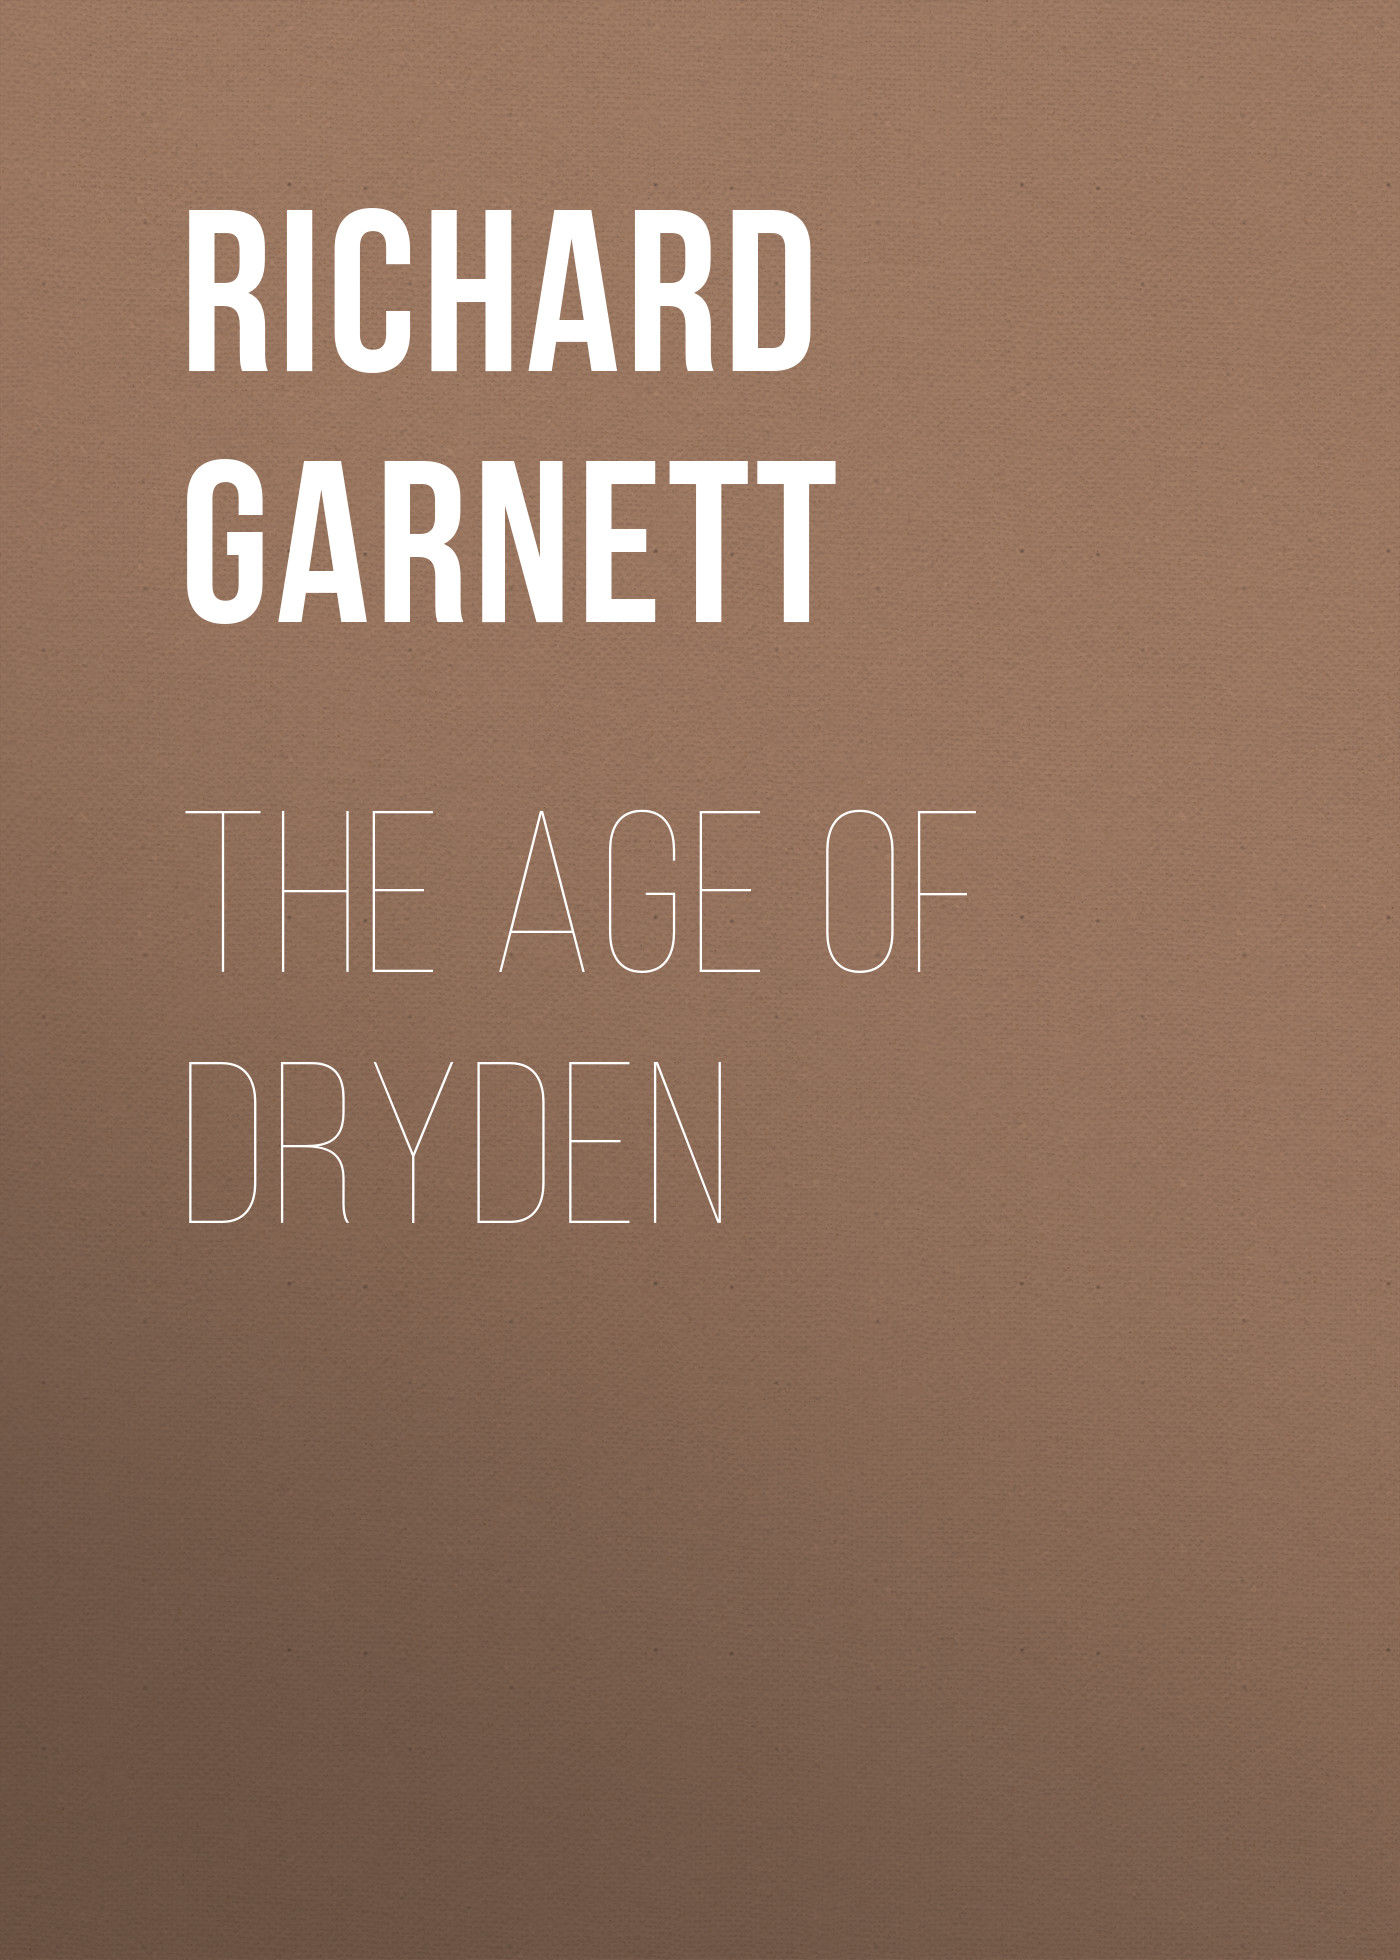 Richard Garnett The Age of Dryden все цены